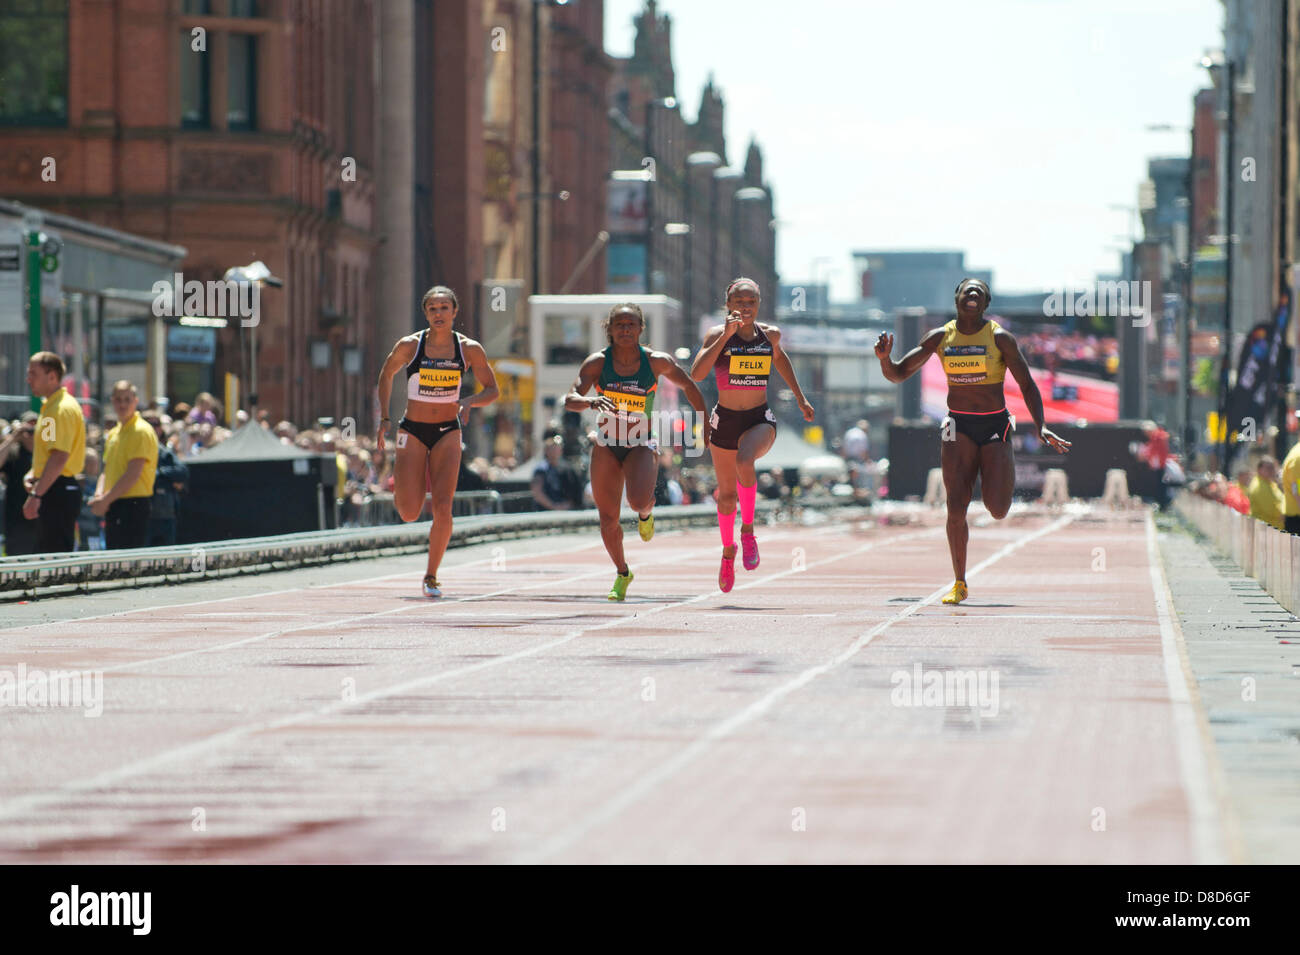 MANCHESTER, UK. 25th May 2013. Allyson Felix of the United States sprints to take 1st place in the Womens 150m event - Stock Image